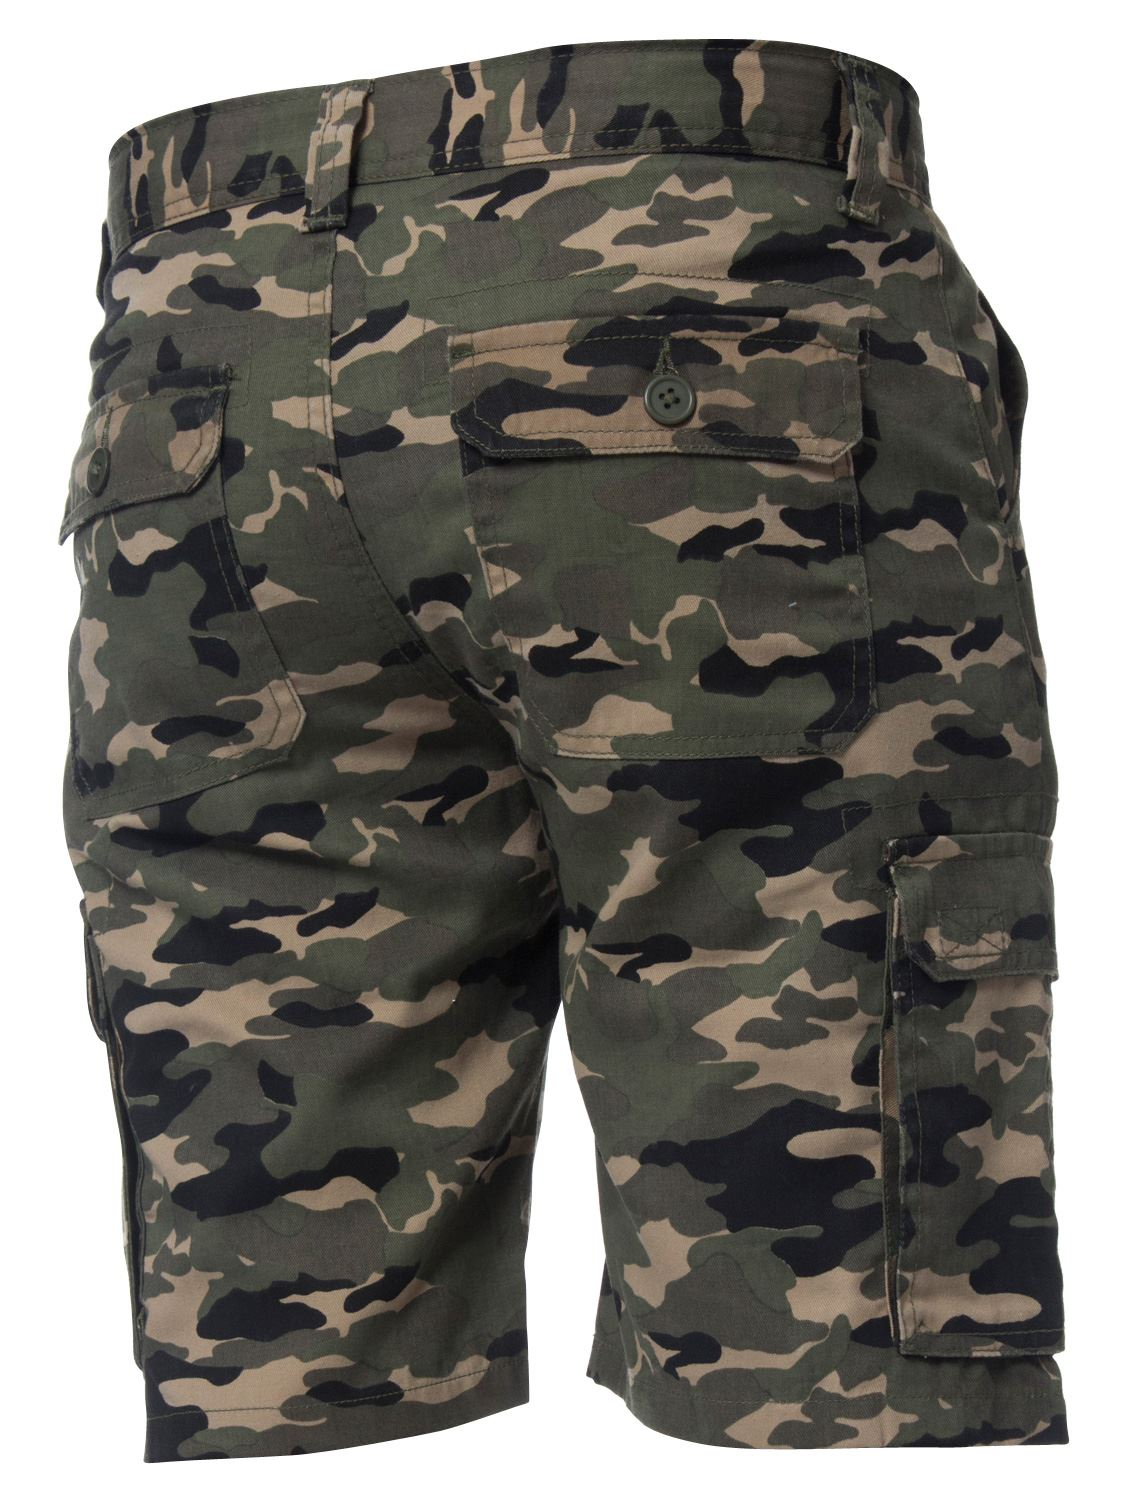 Kruze-Jeans-Mens-Army-Combat-Shorts-Camouflage-Cargo-Casual-Camo-Work-Half-Pants thumbnail 15